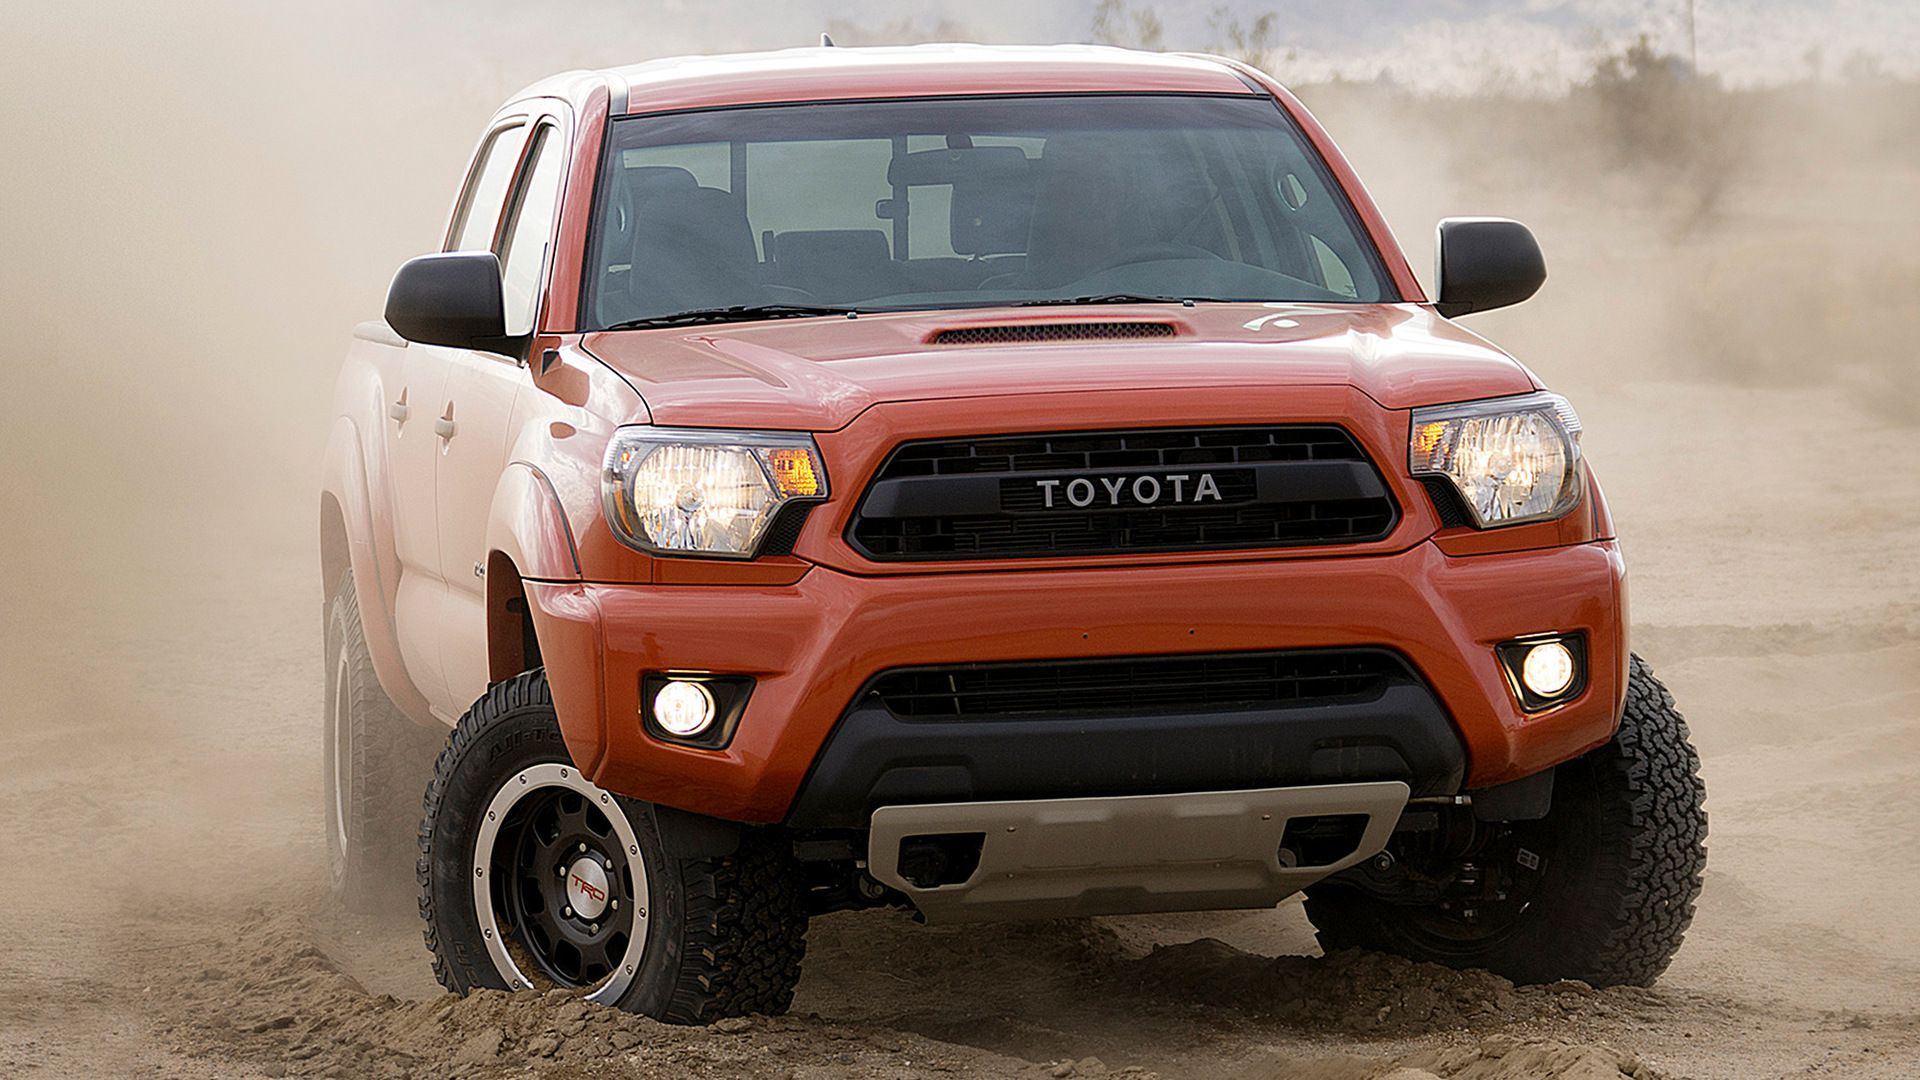 Toyota tacoma trd pro double cab 2015 wallpapers and hd images toyota tacoma trd pro double cab 2015 wallpapers and hd images voltagebd Choice Image